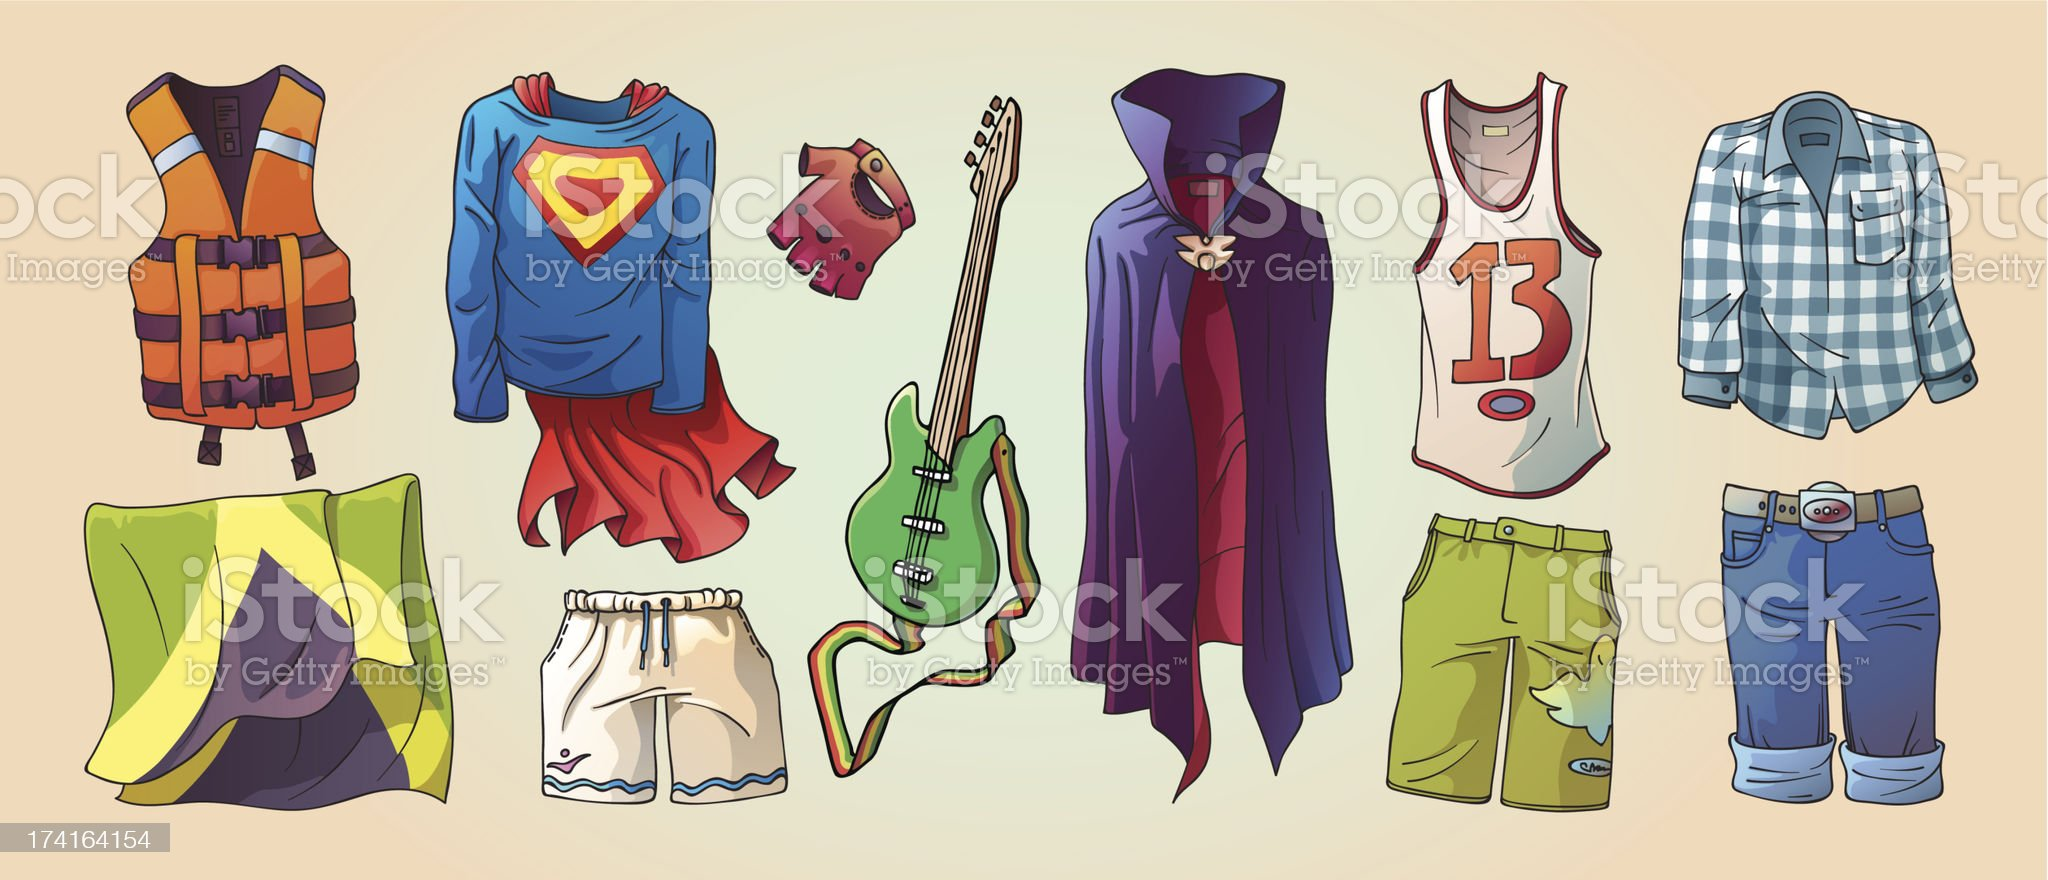 Some Original Clothes and the Guitar royalty-free stock vector art